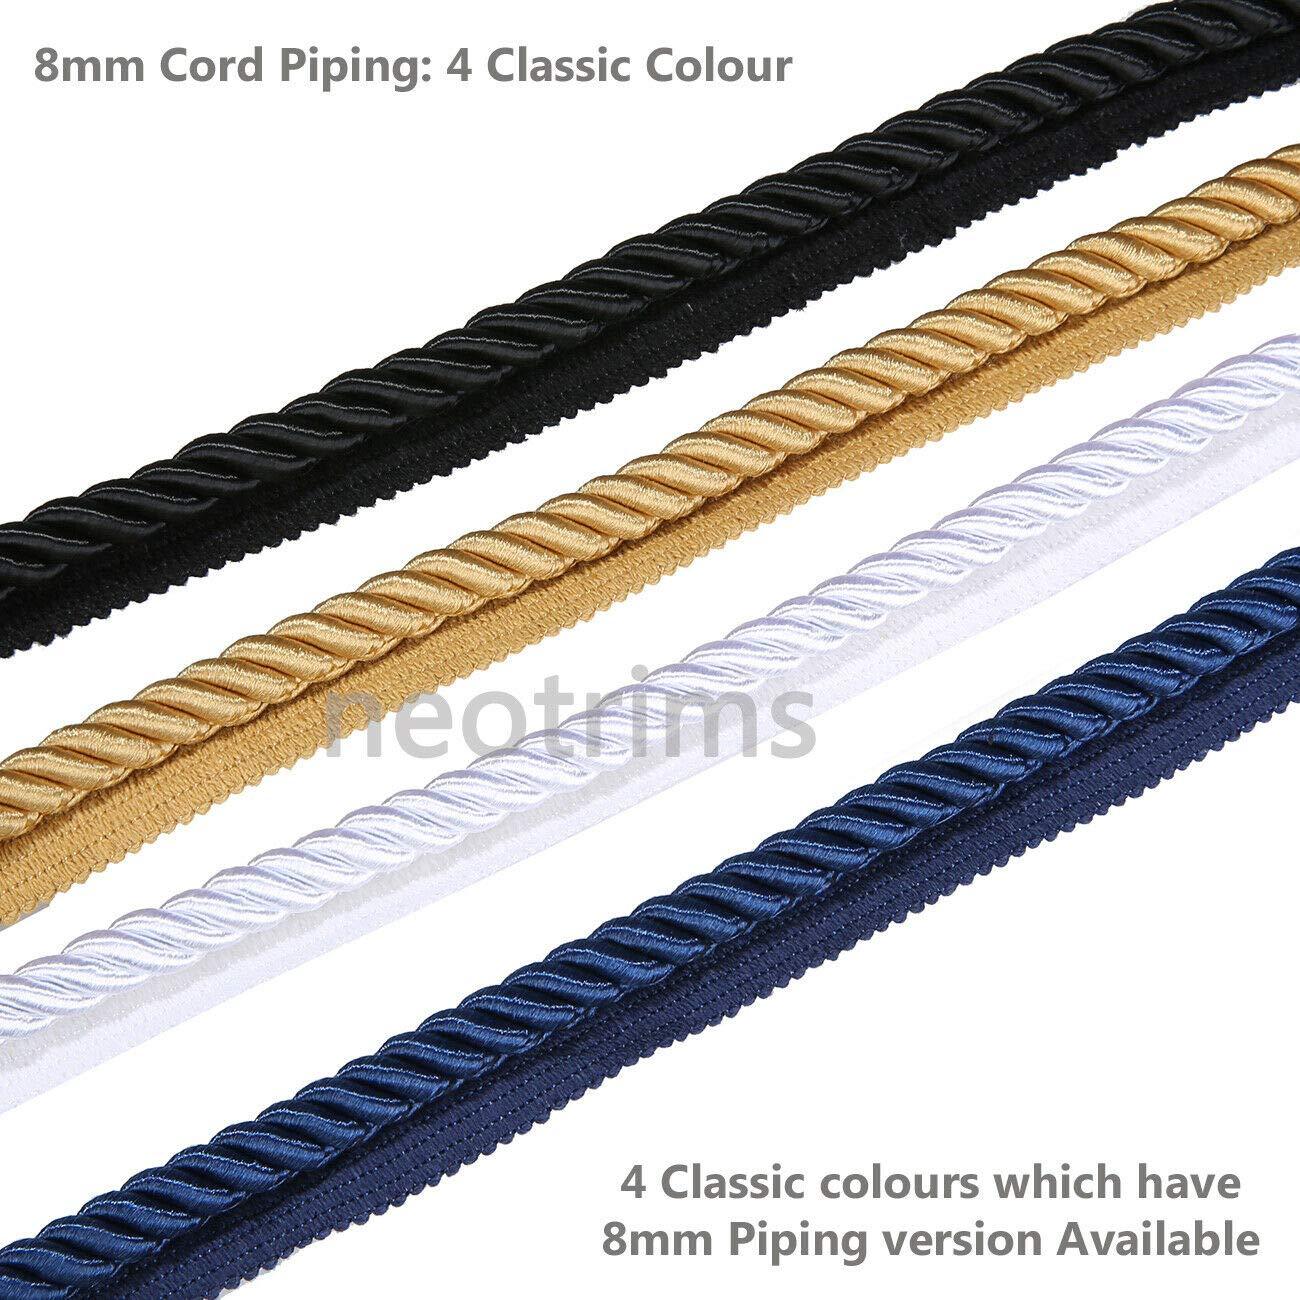 6mm Silky Barley Twist Cord /& 16mm Flanged Insertion Piping Upholstery Crafts Trimming 36 Colors Durable /& Versatile Neotrims High Strength